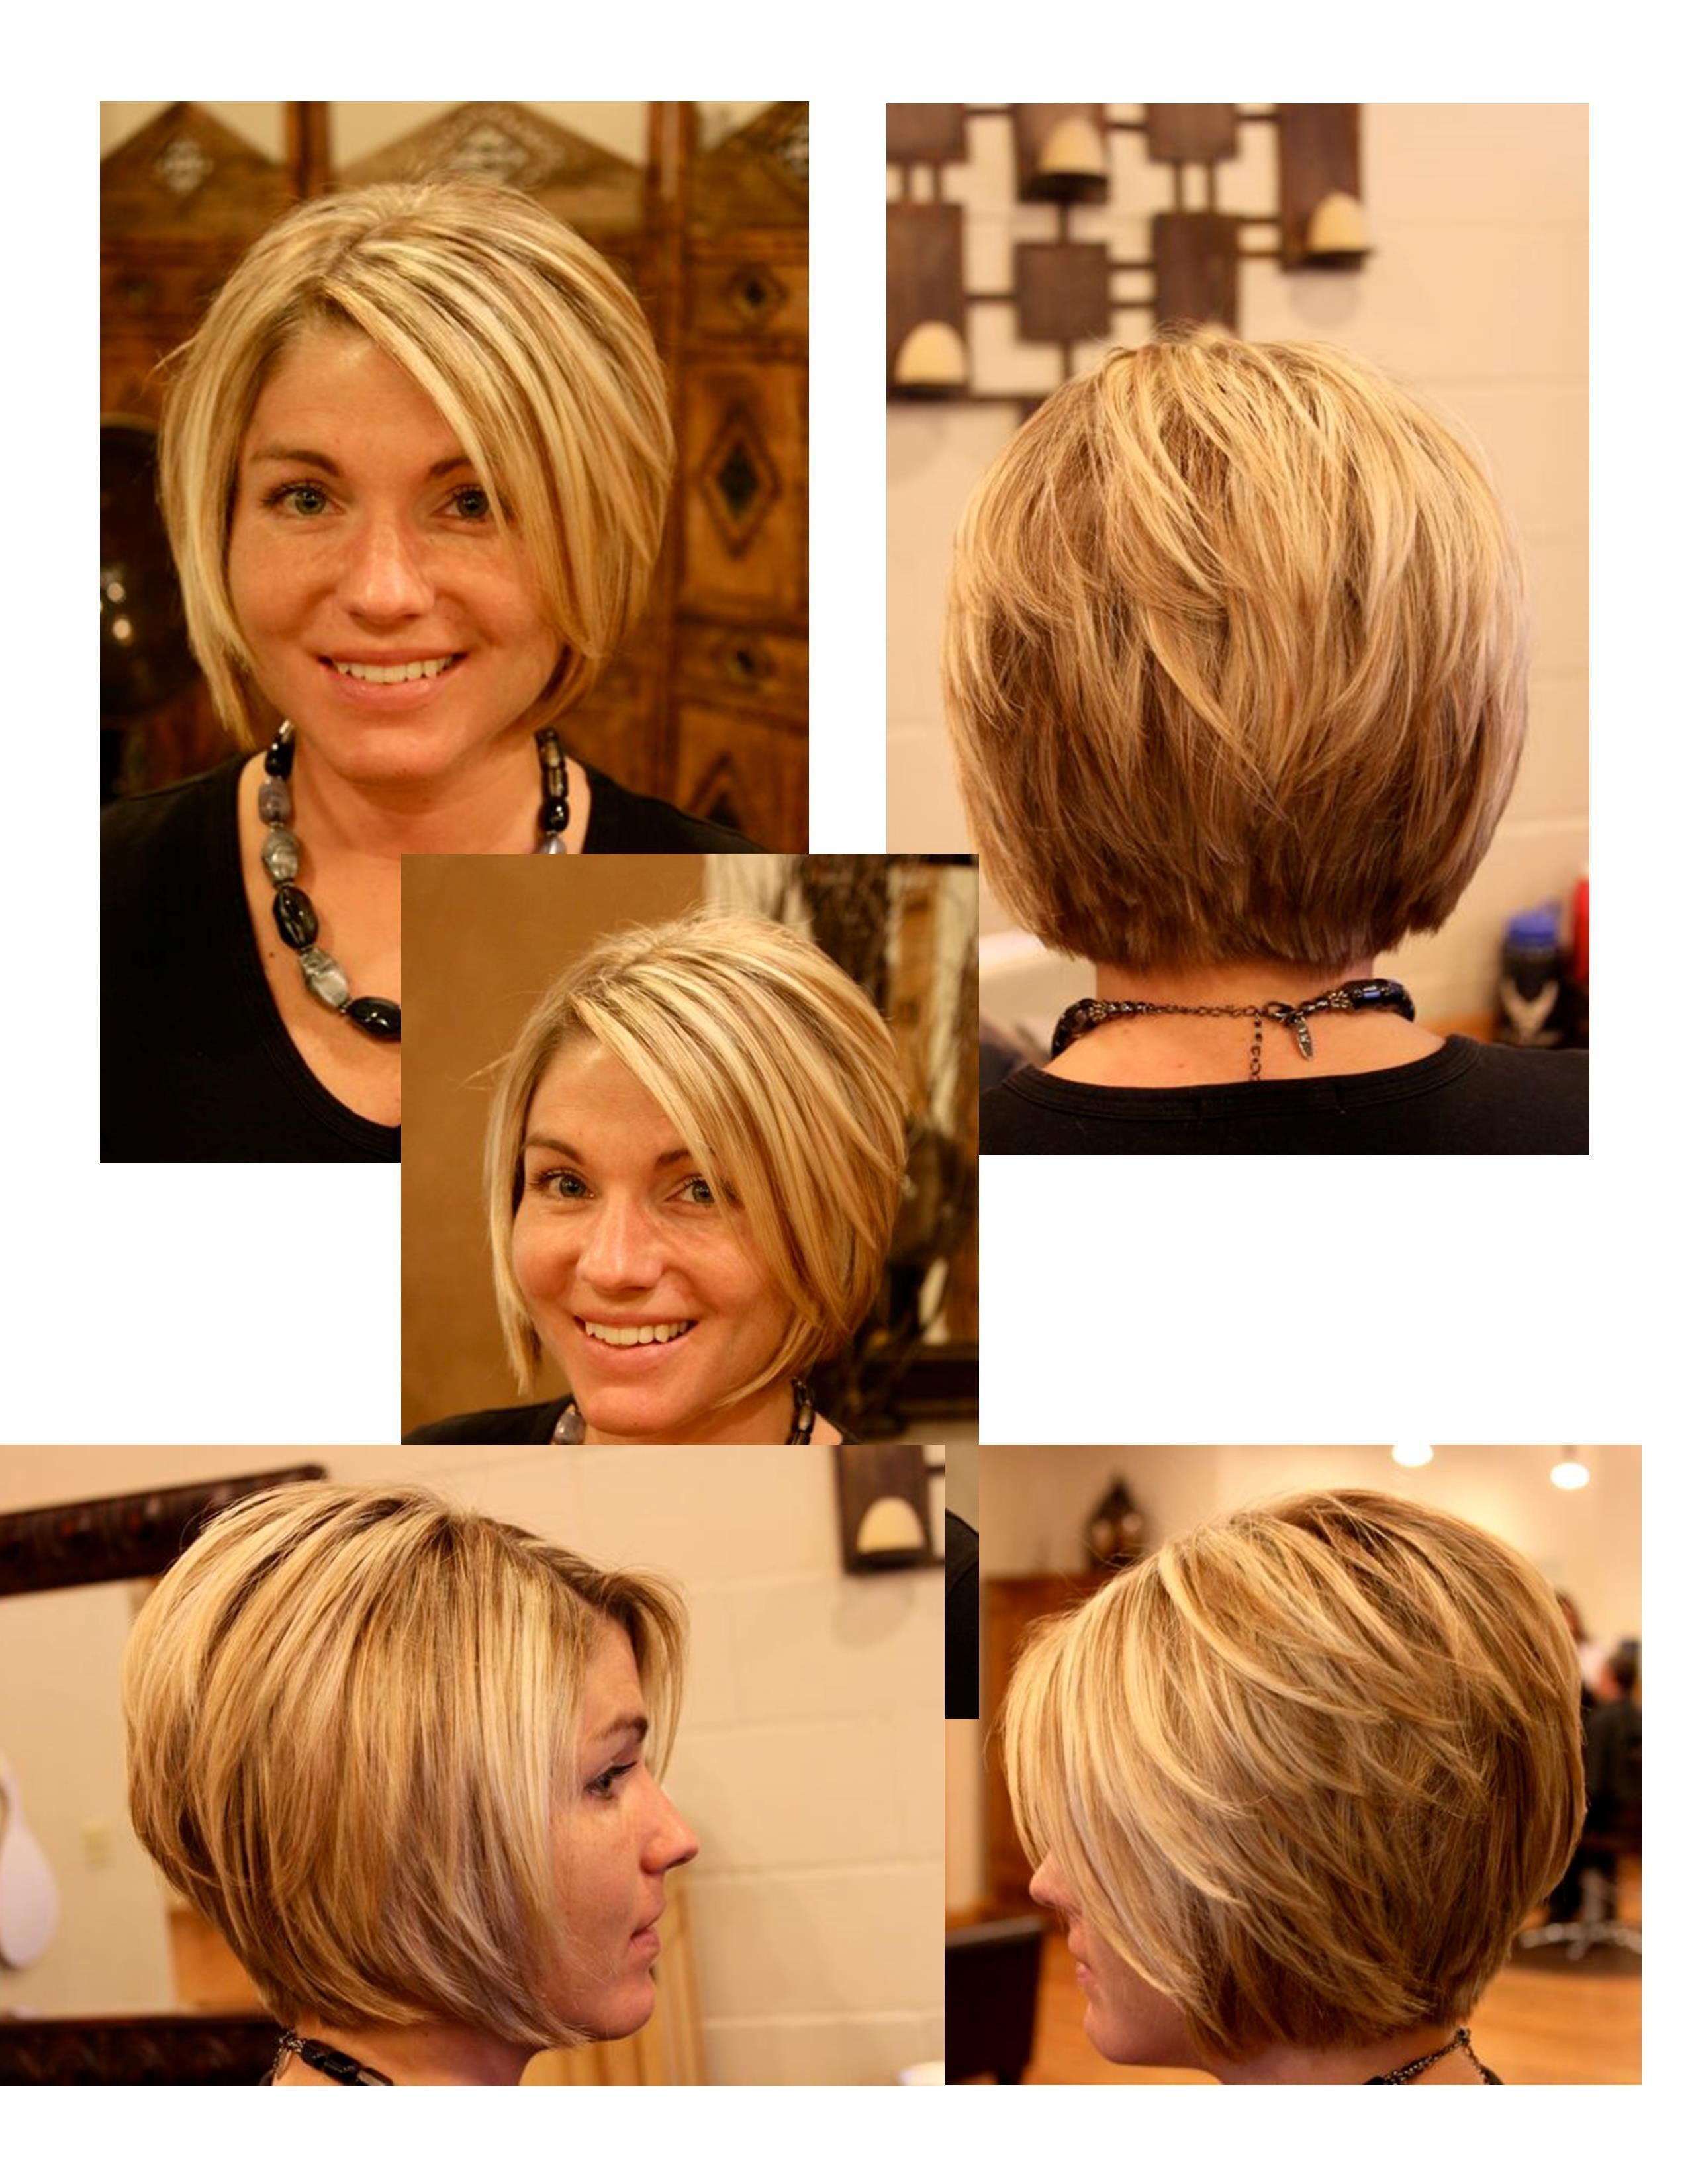 Einzigartige Frisuren Fur Kurz Geschichtetes Haar Frisur Thick Hair Styles Cute Hairstyles For Short Hair Bob Hairstyles